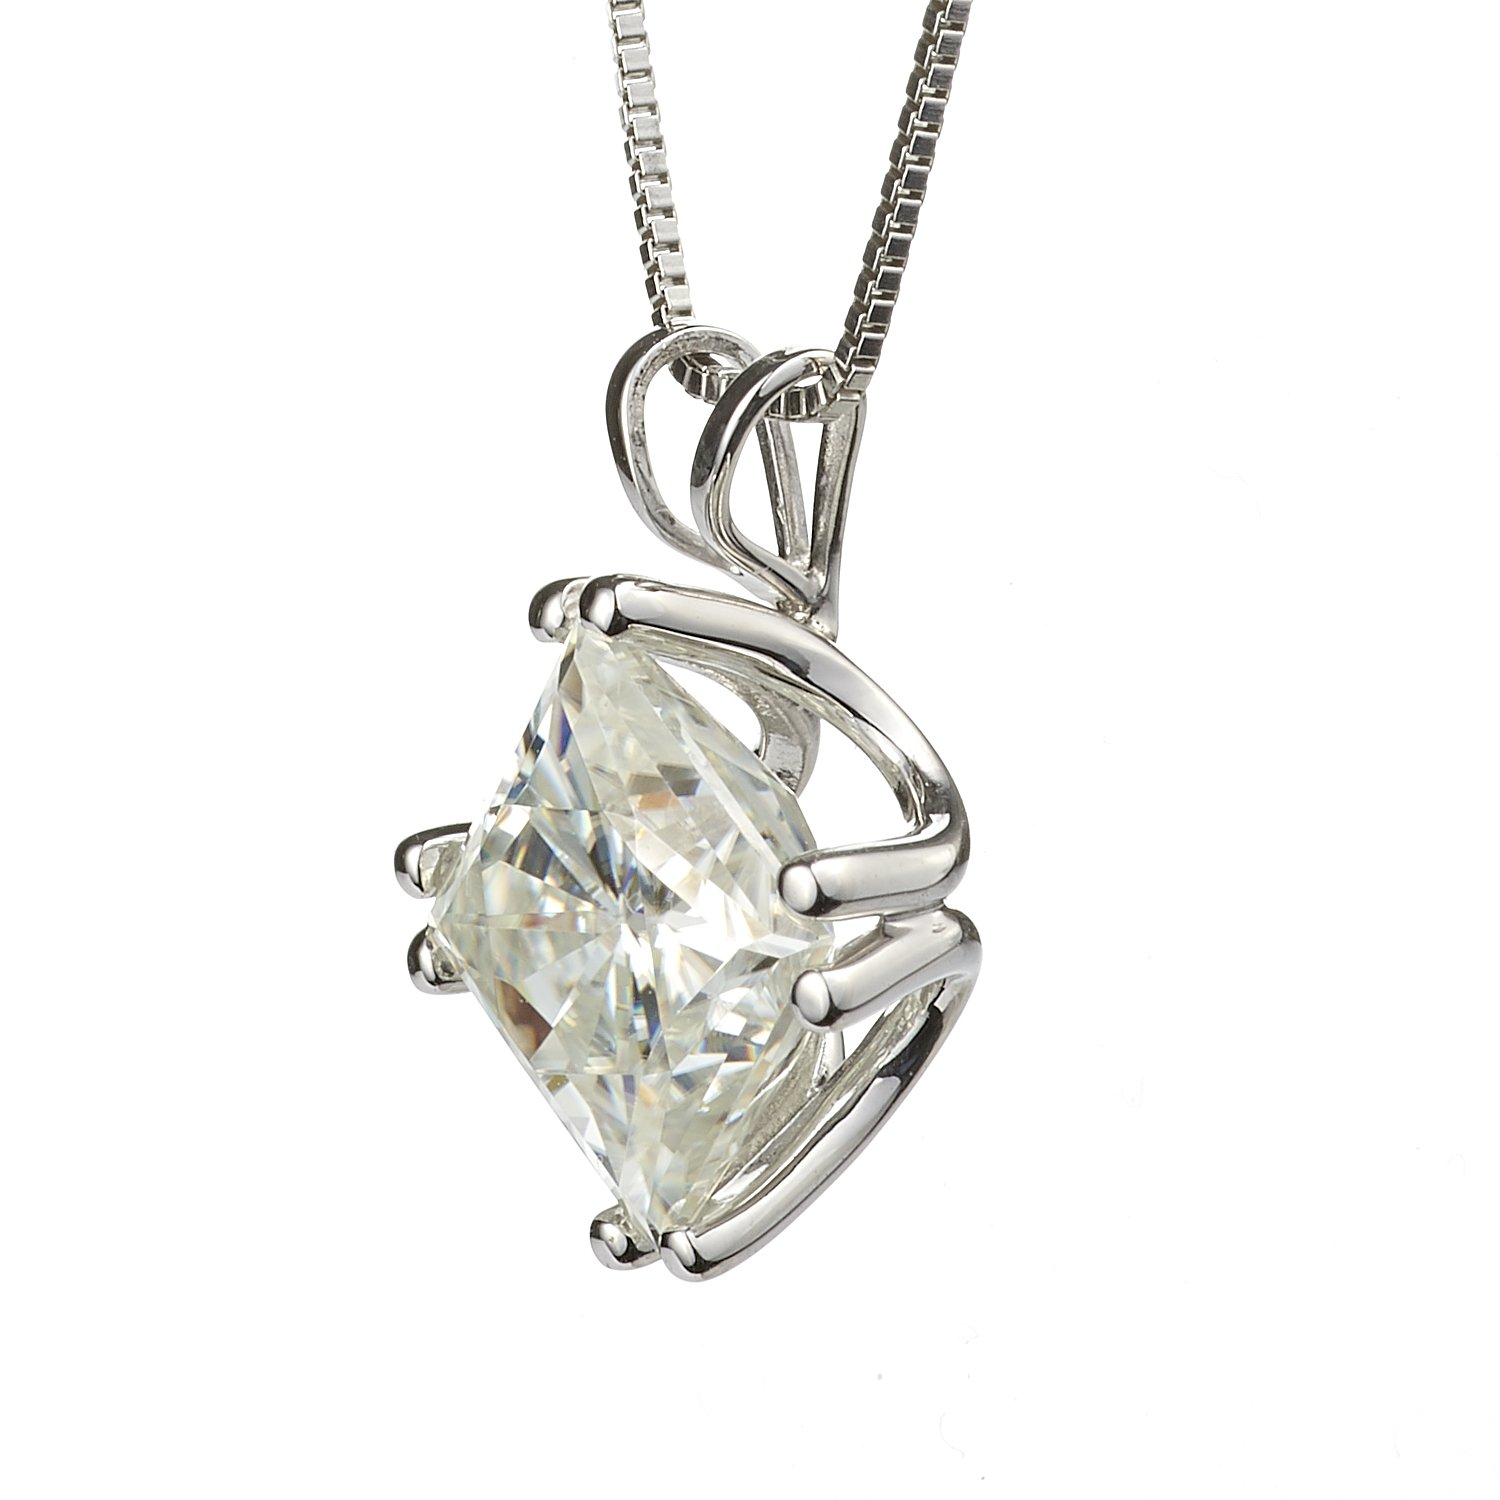 Square Brilliant Cut 7.0mm Moissanite Solitaire Pendant Necklace, 2.10ct DEW by Charles Colvard